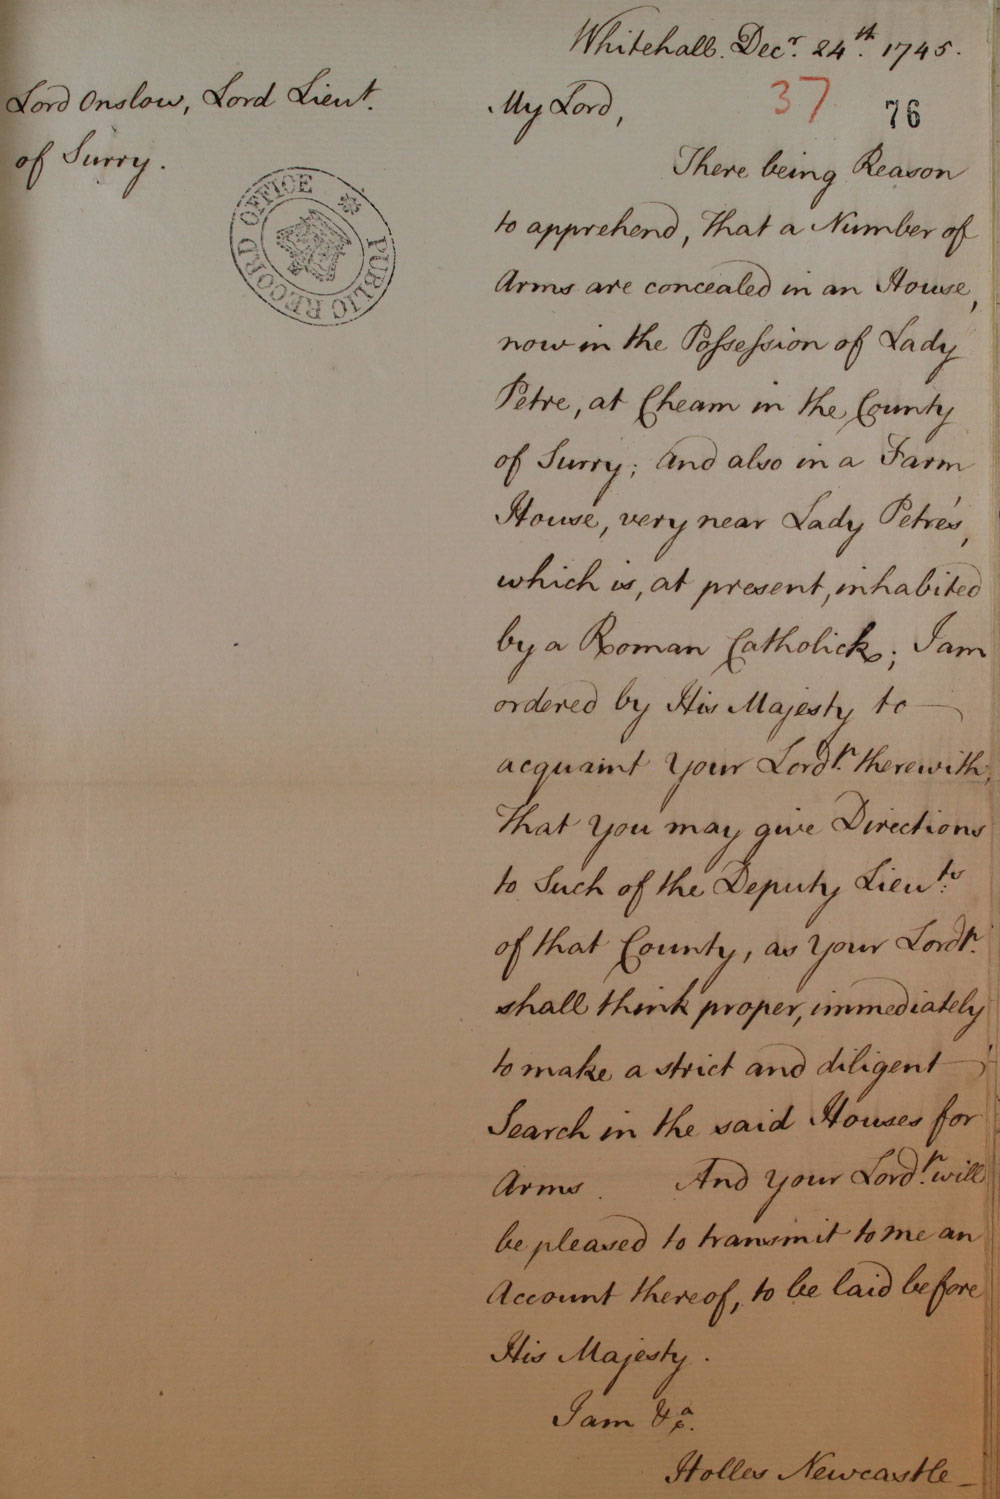 Letter from the Earl of Newcastle, 1745 (SP 36/78/76)